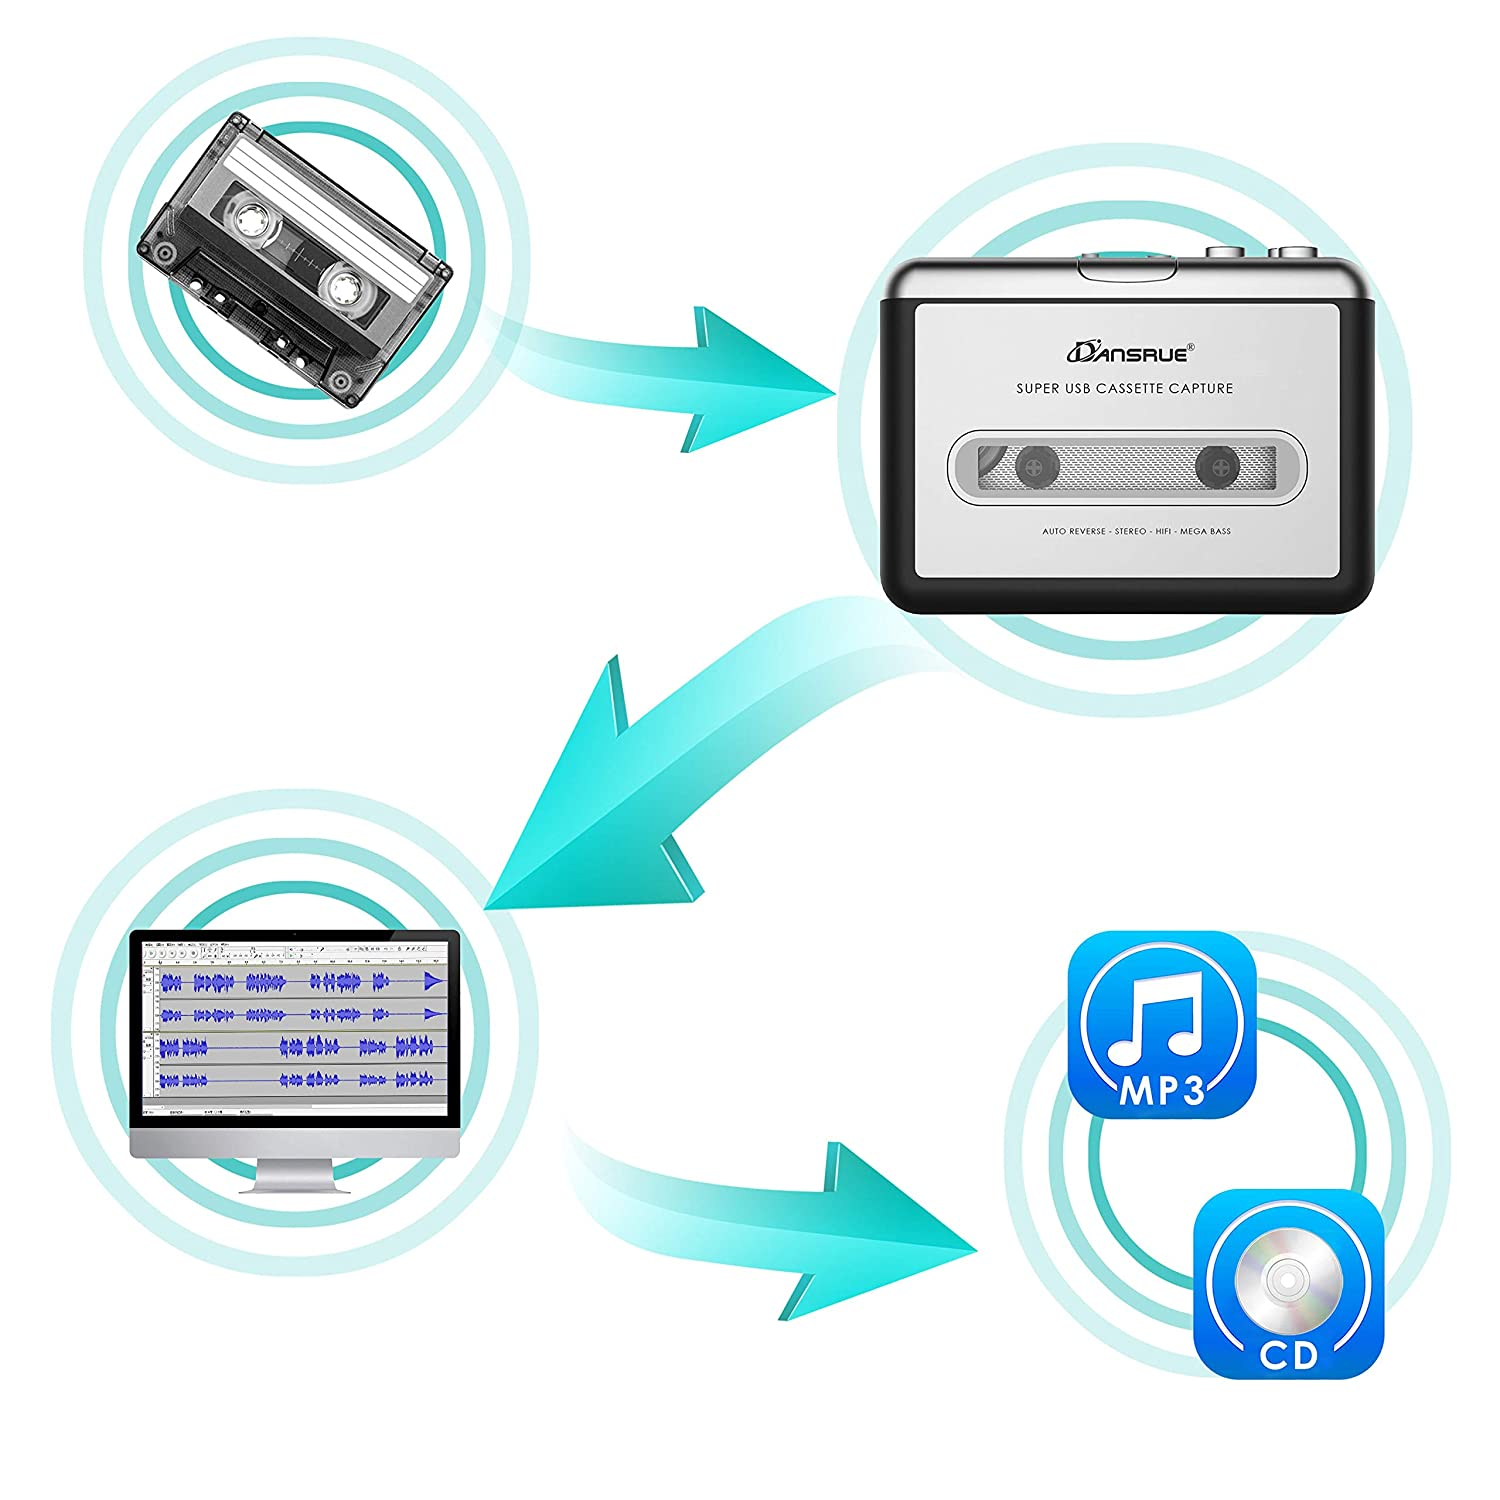 PC and Mac Work for Window iOS Convert Walkman Cassettes to Digital FormatSilver 01 2019 Cassette to MP3 Converter USB Cassette Player from Tapes to MP3 Converter for Laptop